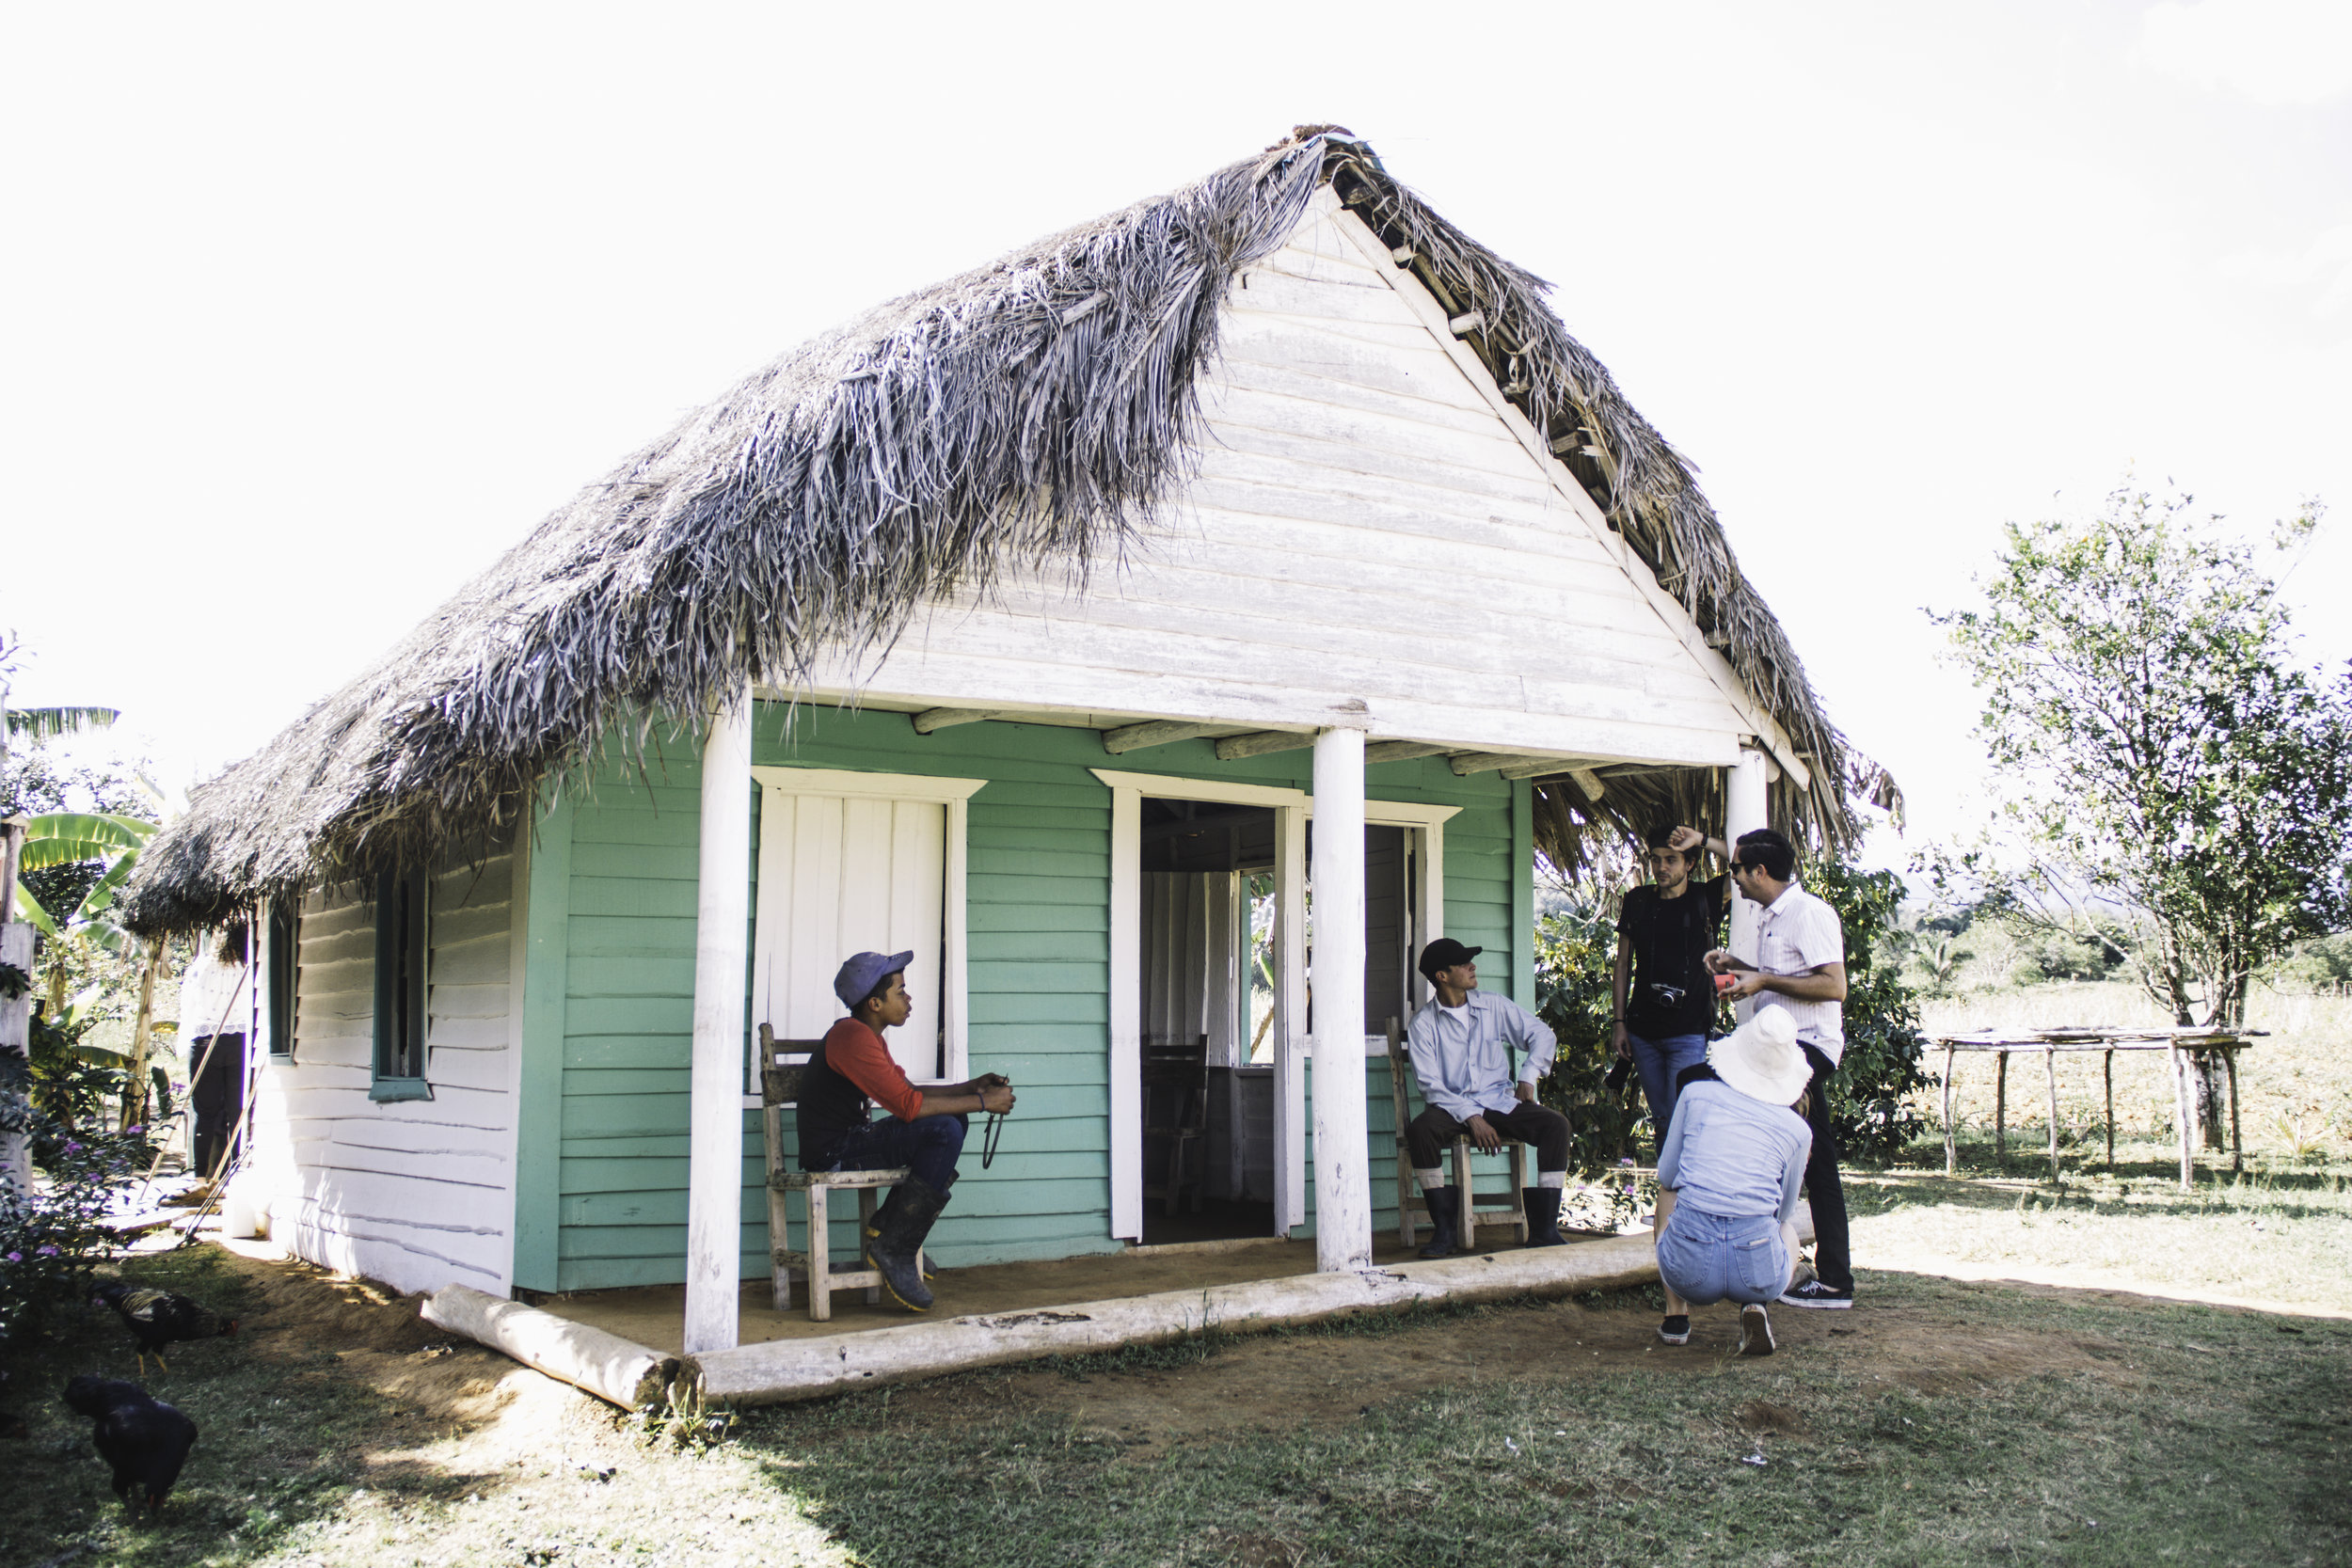 Our Favorite Day in Cuba | Horseback Riding in Vinales, Cuba | Beyond Ordinary Guides-47.jpg